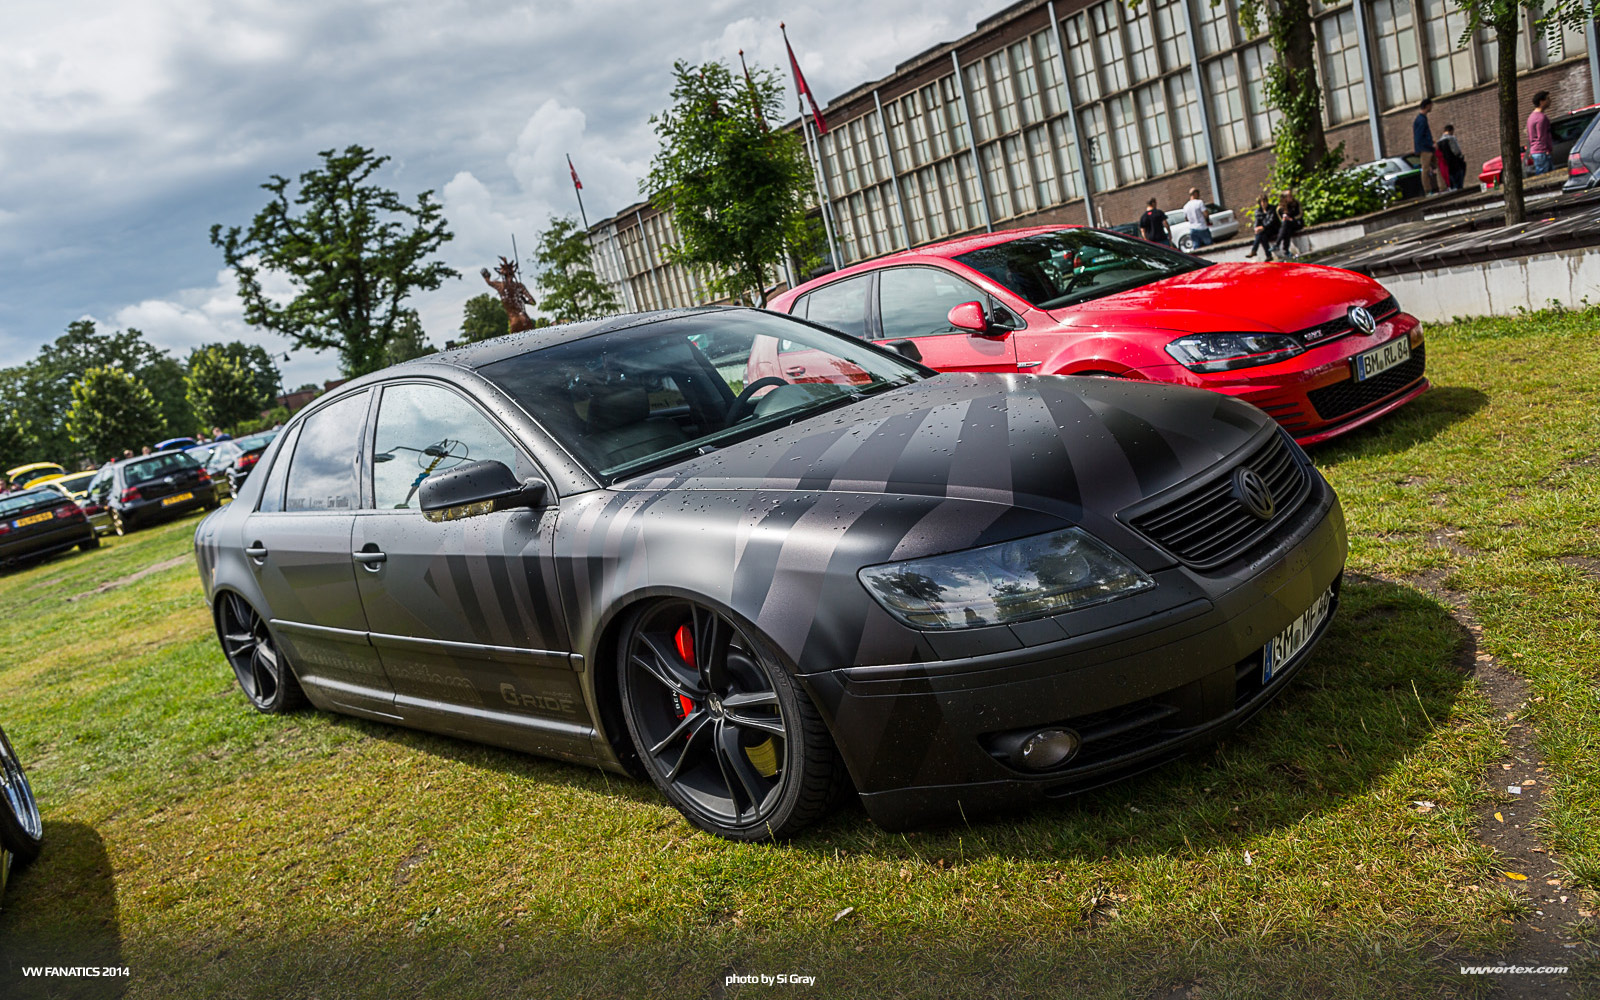 VWFanatics-2014-Si-Gray-478